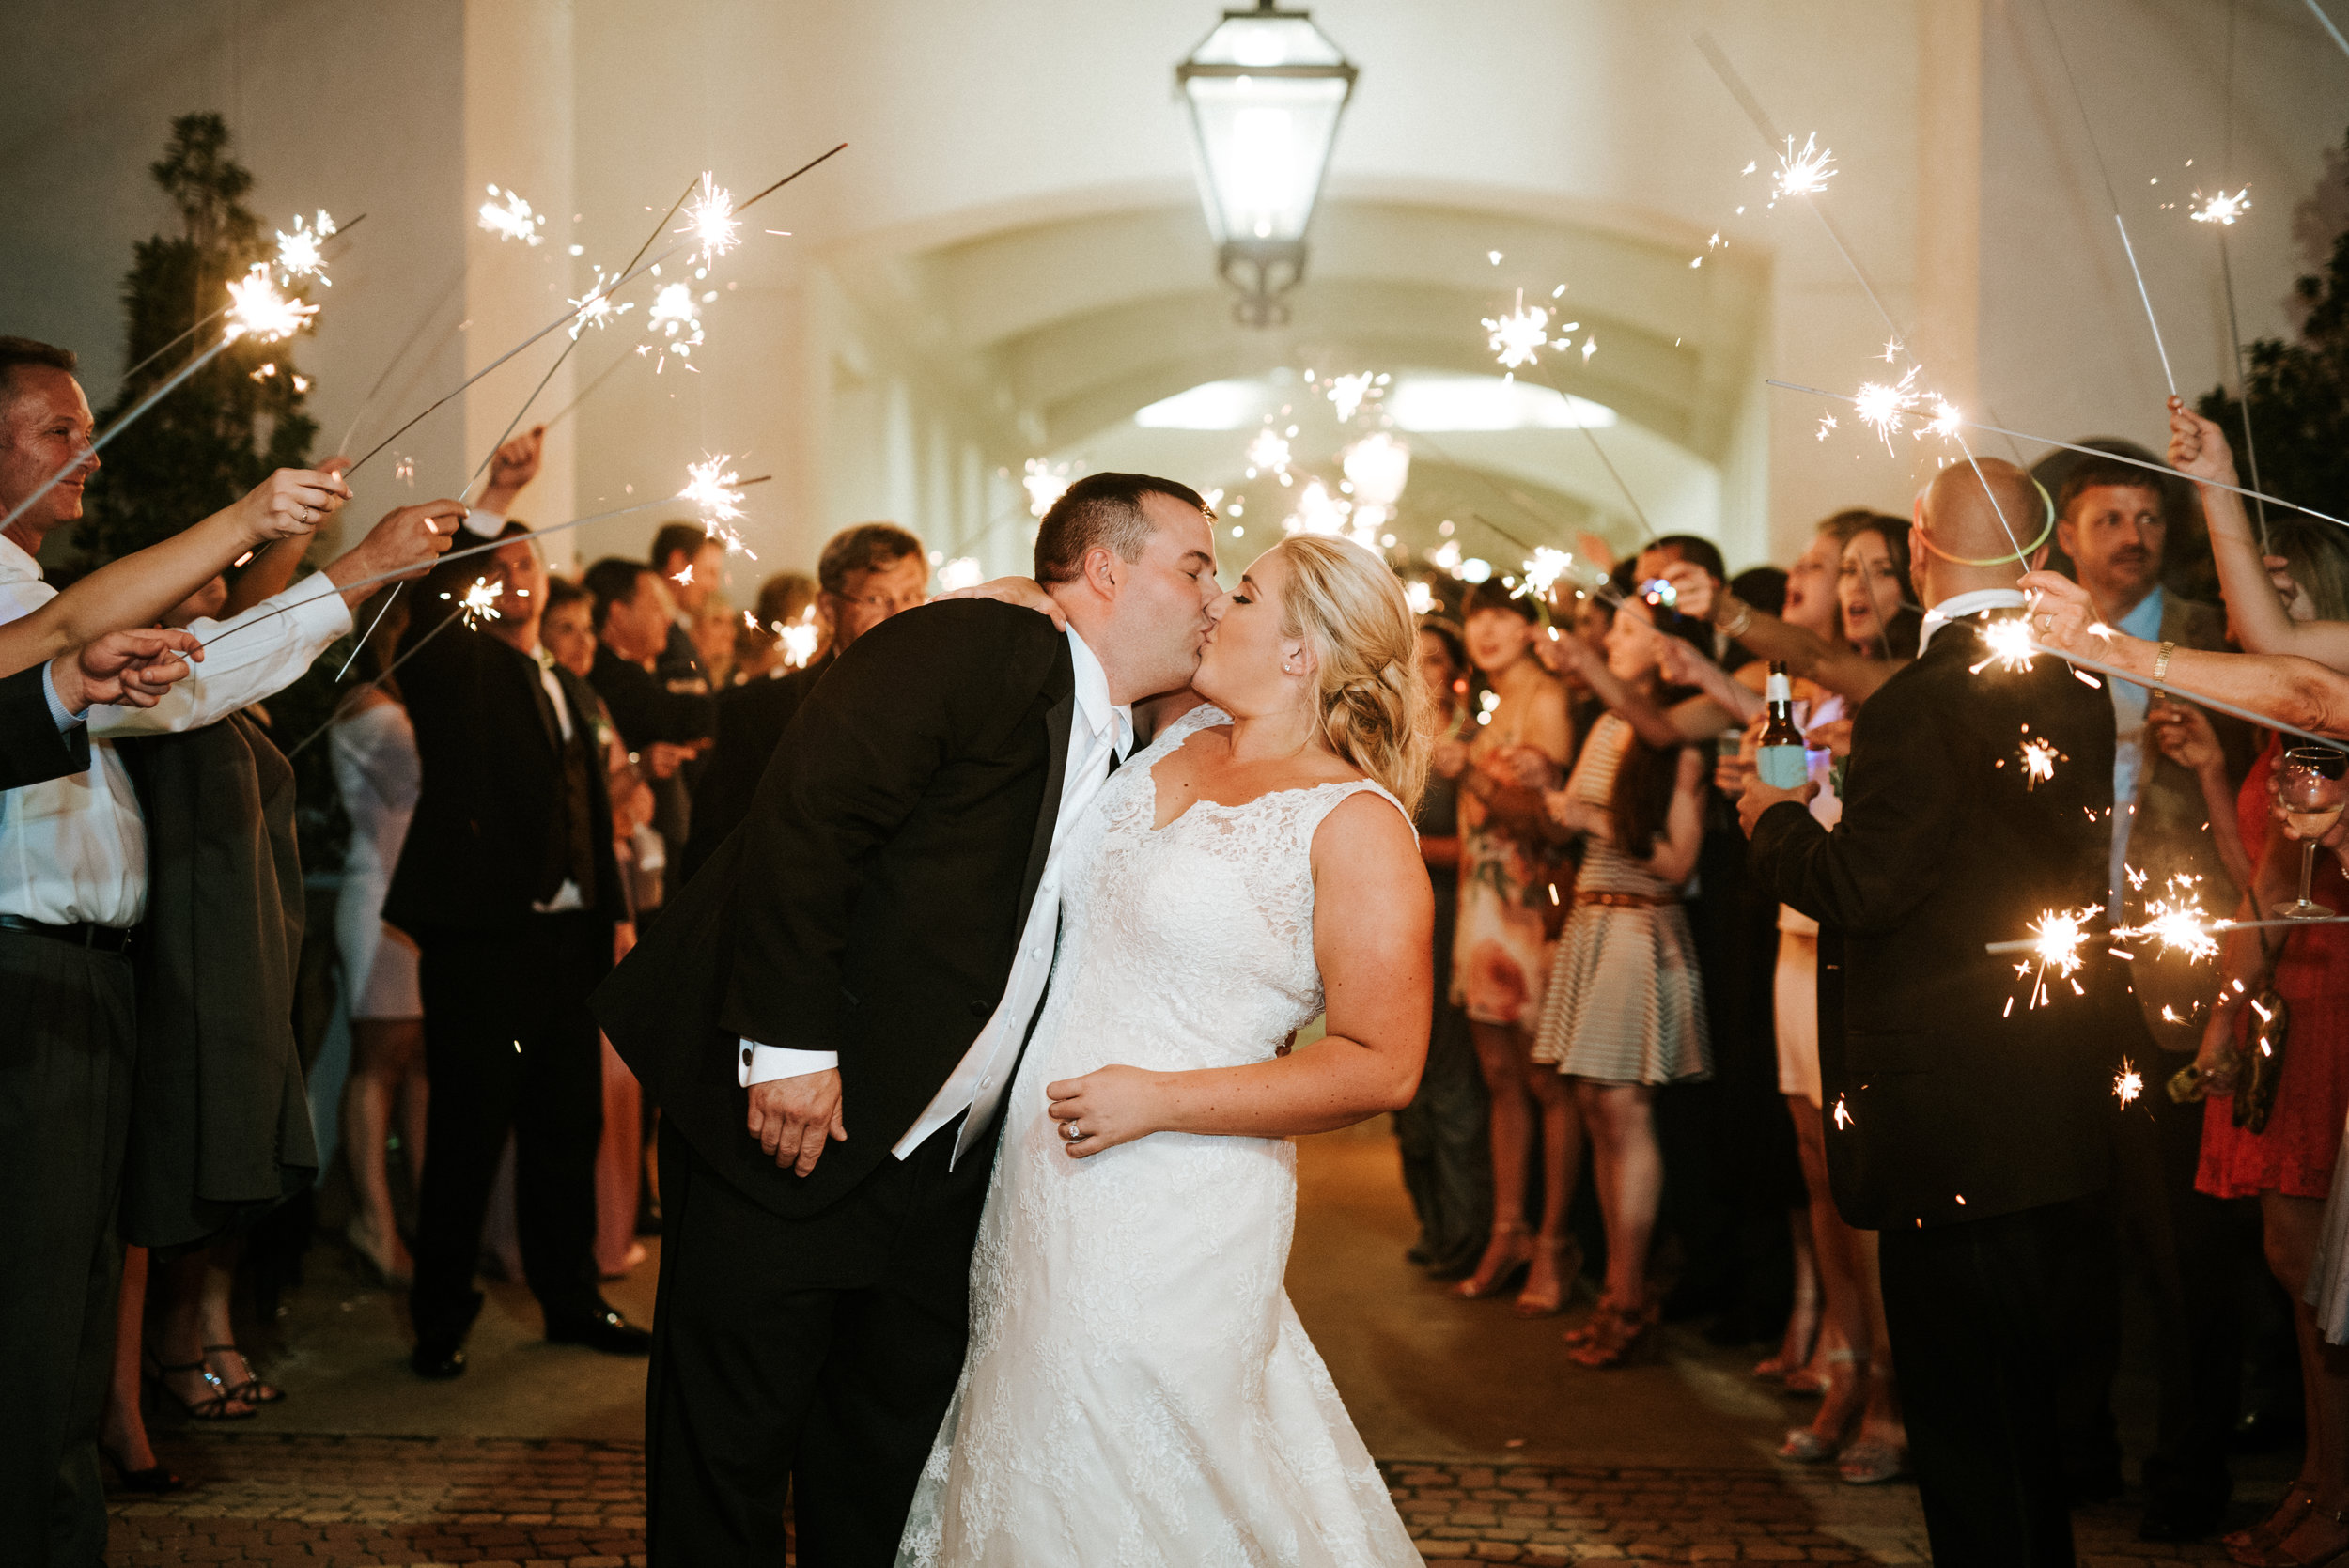 Southern Fete, Southern Wedding, Sparkler Exit, Bride and Groom, City Club River Ranch, Hannah Mulligan Photography